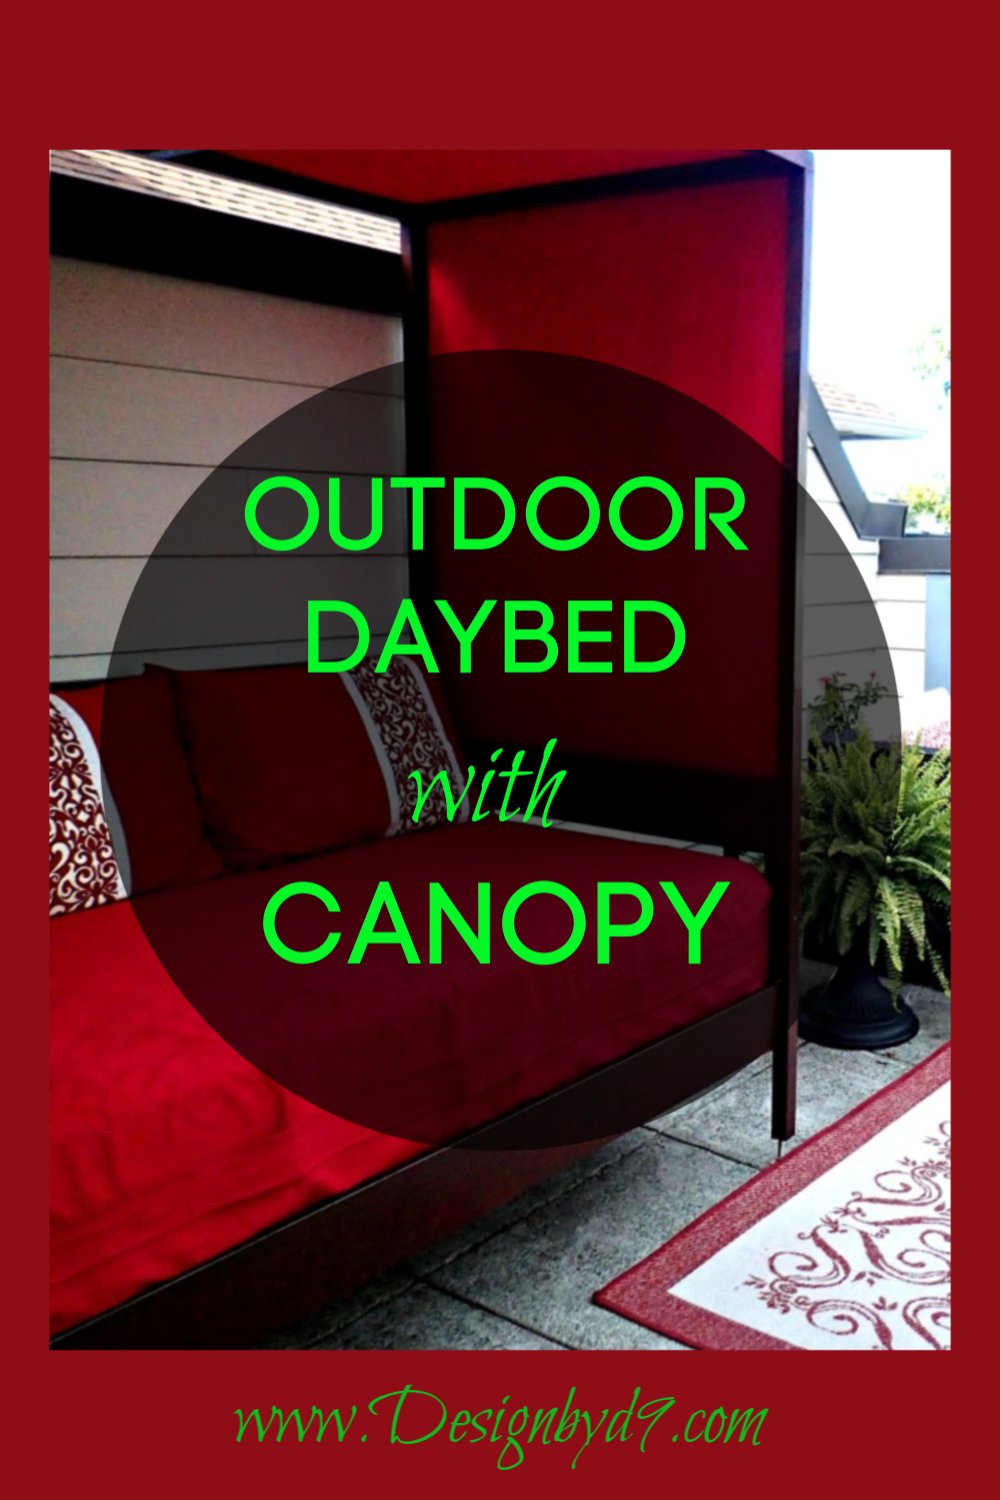 Outdoor Daybed | Outdoor daybed, Daybed canopy, Outdoor ...